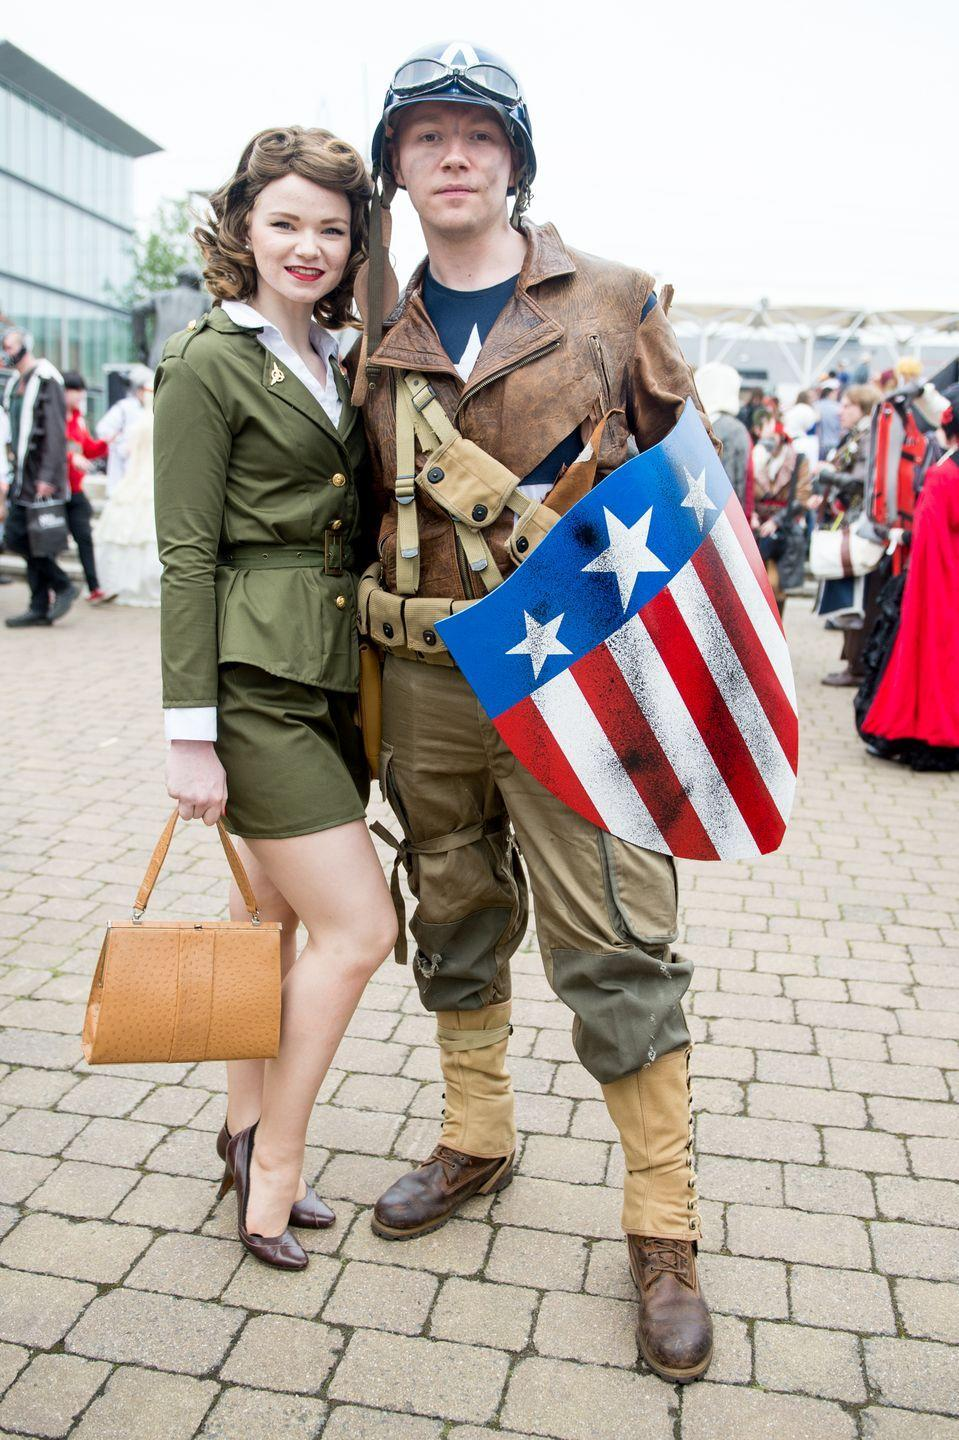 """<p>How cute is this couple o' patriotic heroes? If you and your partner love Marvel, then dressing as this dynamic duo is a no-brainer. </p><p><a class=""""link rapid-noclick-resp"""" href=""""https://www.amazon.com/Forum-Novelties-Womens-Costume-Standard/dp/B004Q2RI80/?tag=syn-yahoo-20&ascsubtag=%5Bartid%7C10055.g.2625%5Bsrc%7Cyahoo-us"""" rel=""""nofollow noopener"""" target=""""_blank"""" data-ylk=""""slk:SHOP RETRO MILITARY COSTUME"""">SHOP RETRO MILITARY COSTUME</a></p><p><a class=""""link rapid-noclick-resp"""" href=""""https://www.amazon.com/Rubies-Costume-Captain-America-Shield/dp/B017CTN32I?tag=syn-yahoo-20&ascsubtag=%5Bartid%7C10055.g.2625%5Bsrc%7Cyahoo-us"""" rel=""""nofollow noopener"""" target=""""_blank"""" data-ylk=""""slk:SHOP CAPTAIN AMERICA SHIELD"""">SHOP CAPTAIN AMERICA SHIELD</a> </p>"""